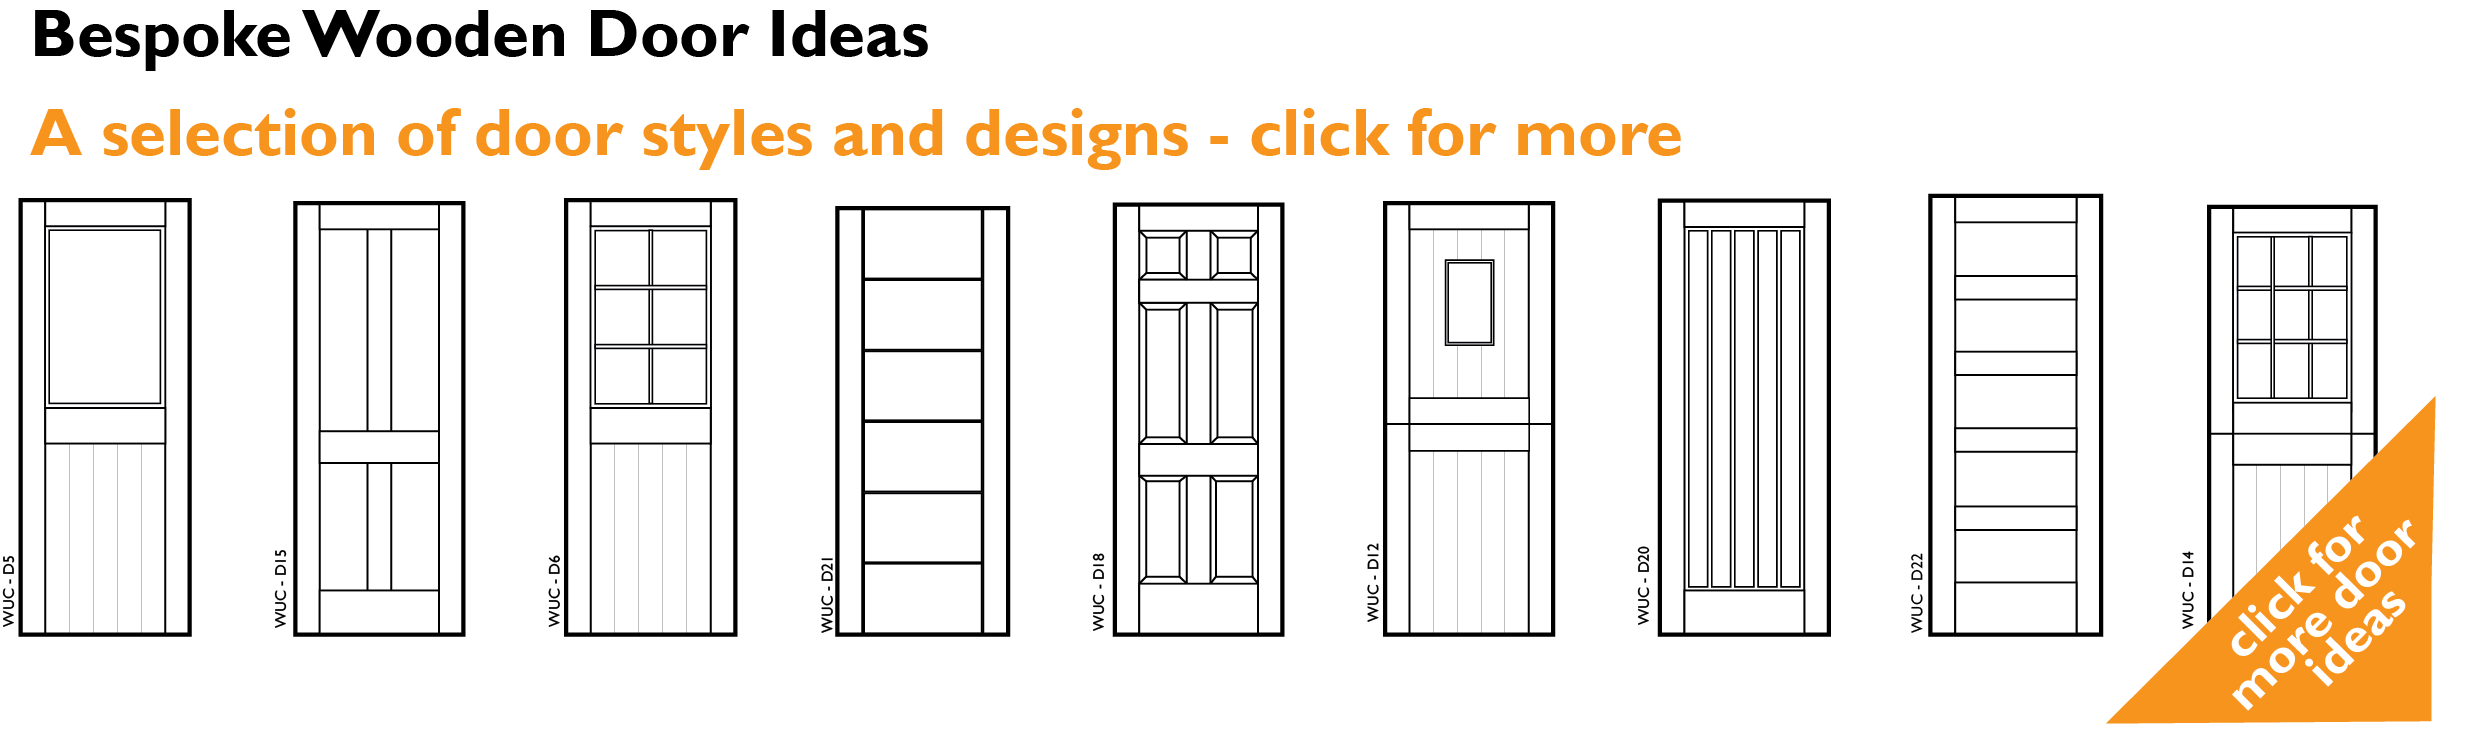 Wood door ideas